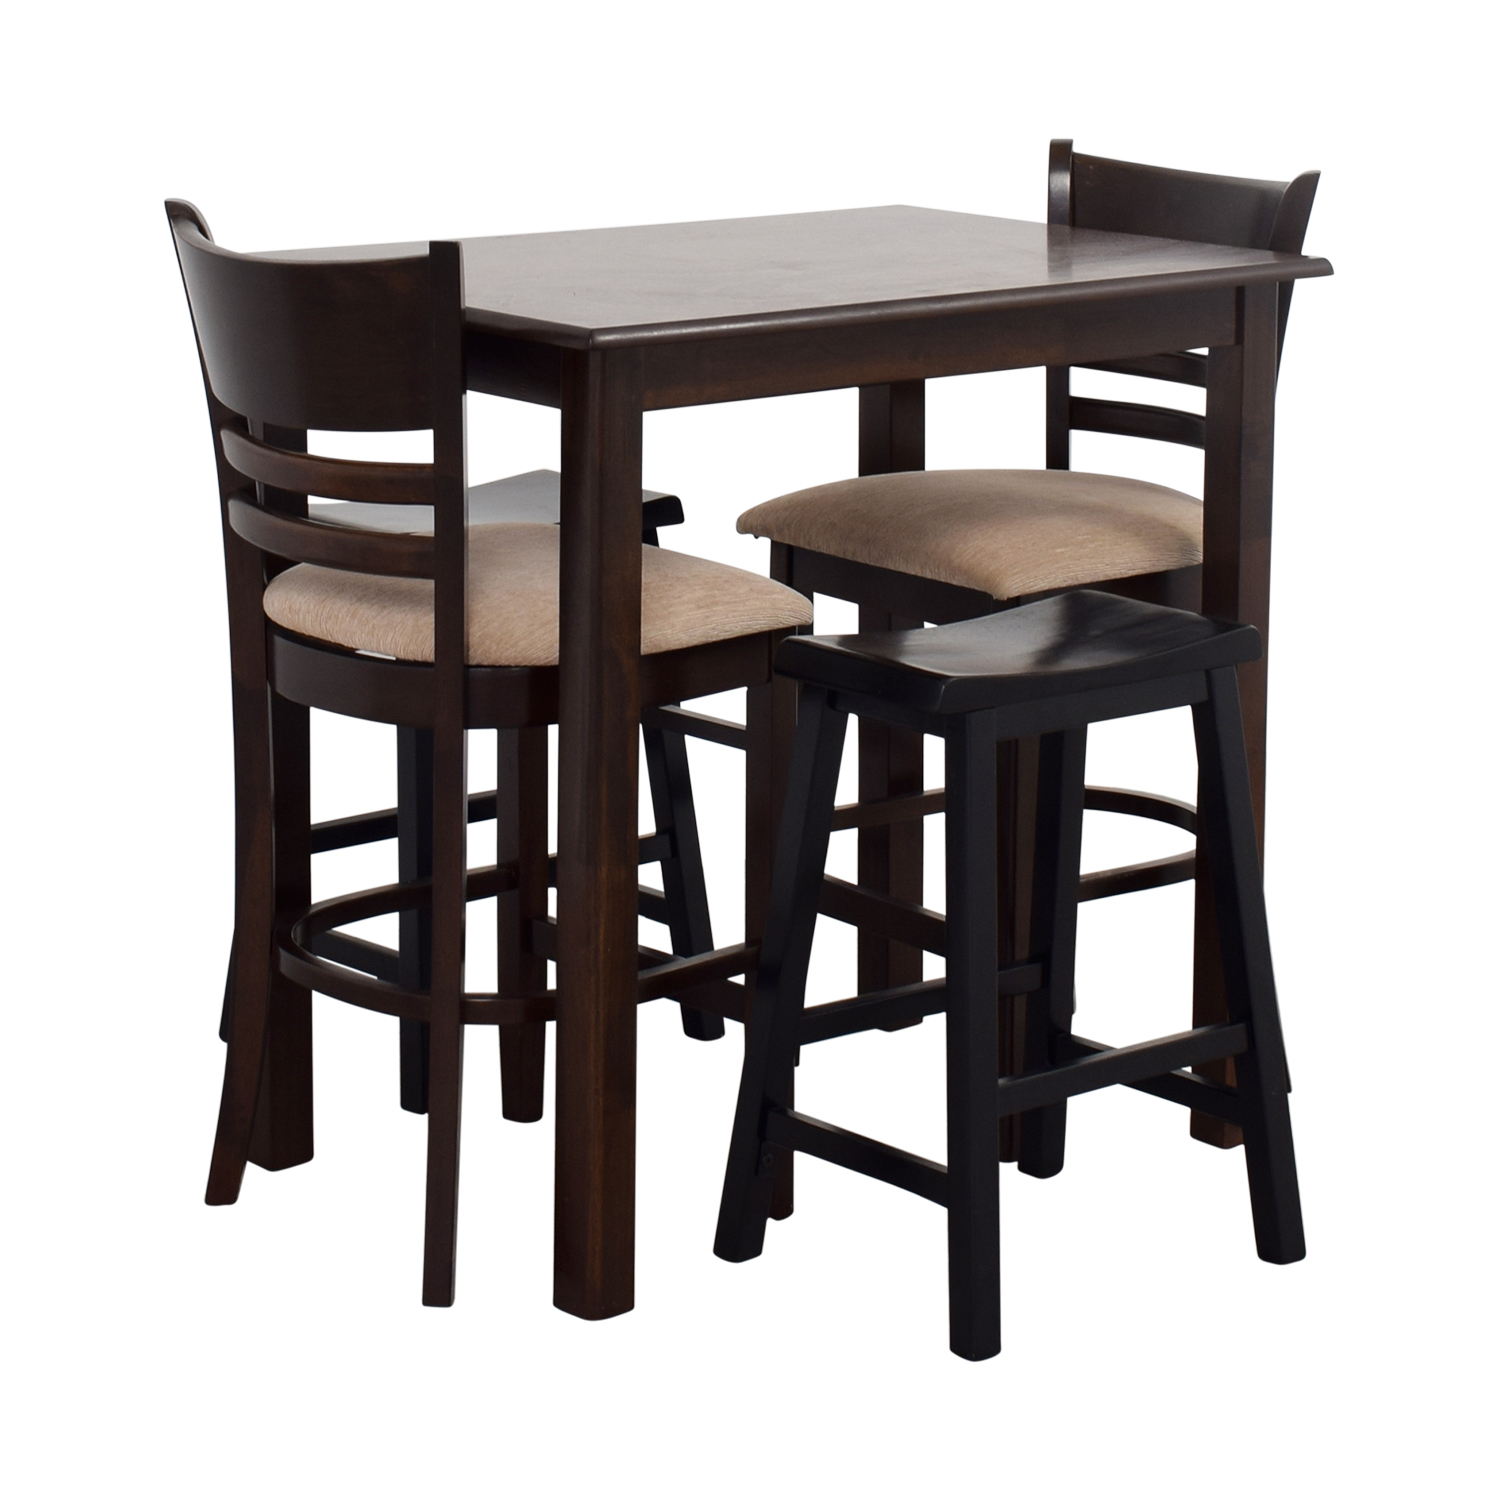 Dining Table With Two Chairs: Simple Bar Table With Two Chairs And Two Stools